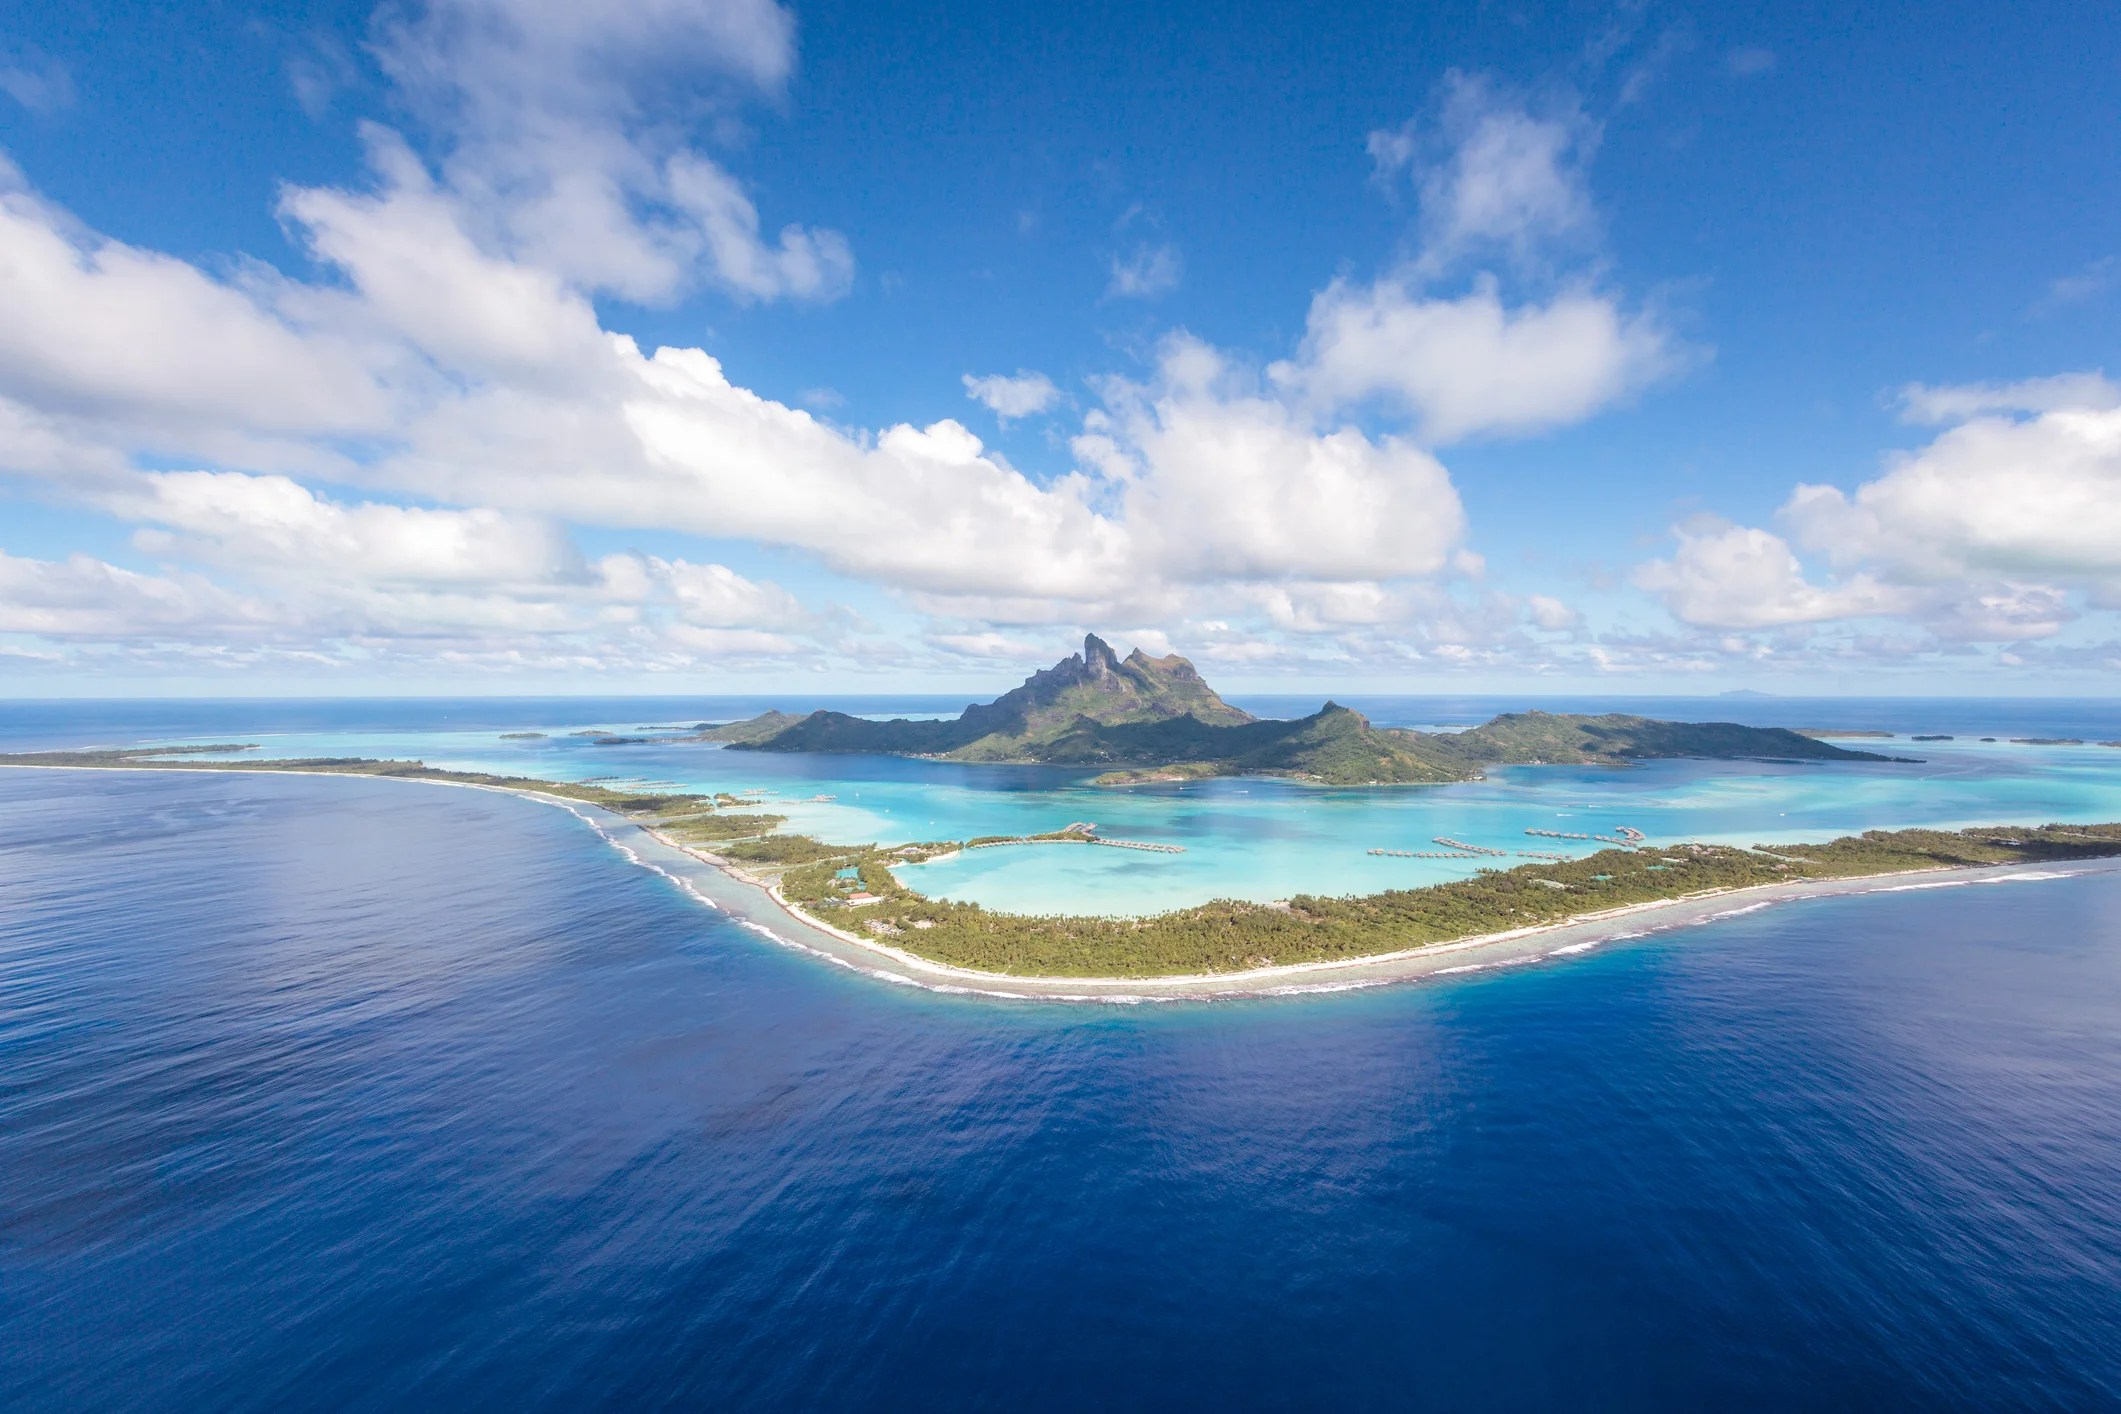 Bora Bora for the day: What to do while your cruise is in port